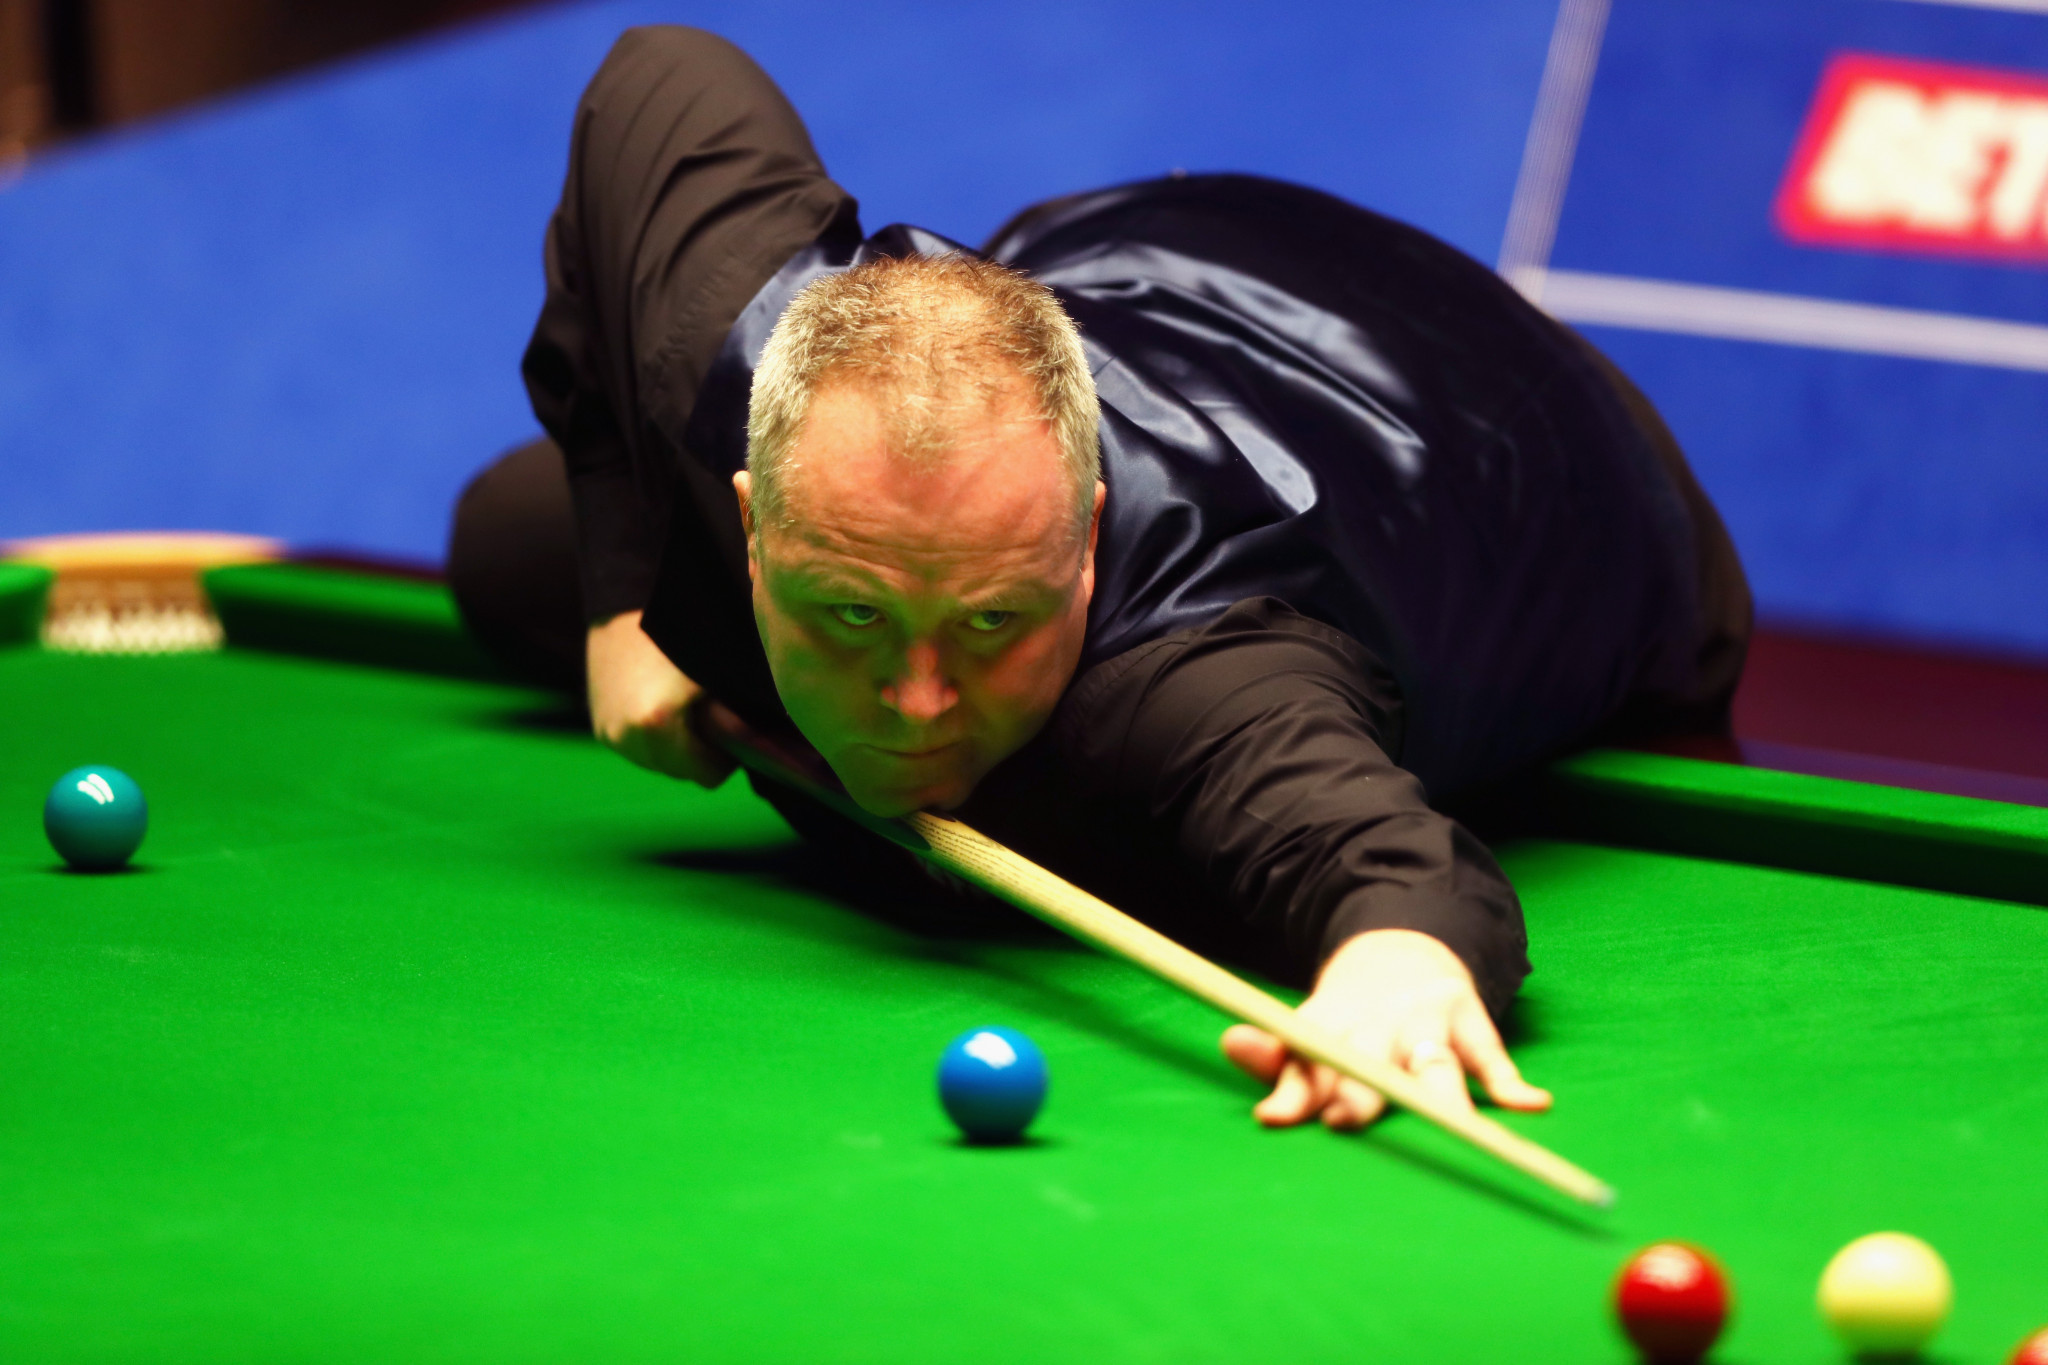 Four-time winner John Higgins has booked his place in the quarter-finals of the World Snooker Championships ©Getty Images